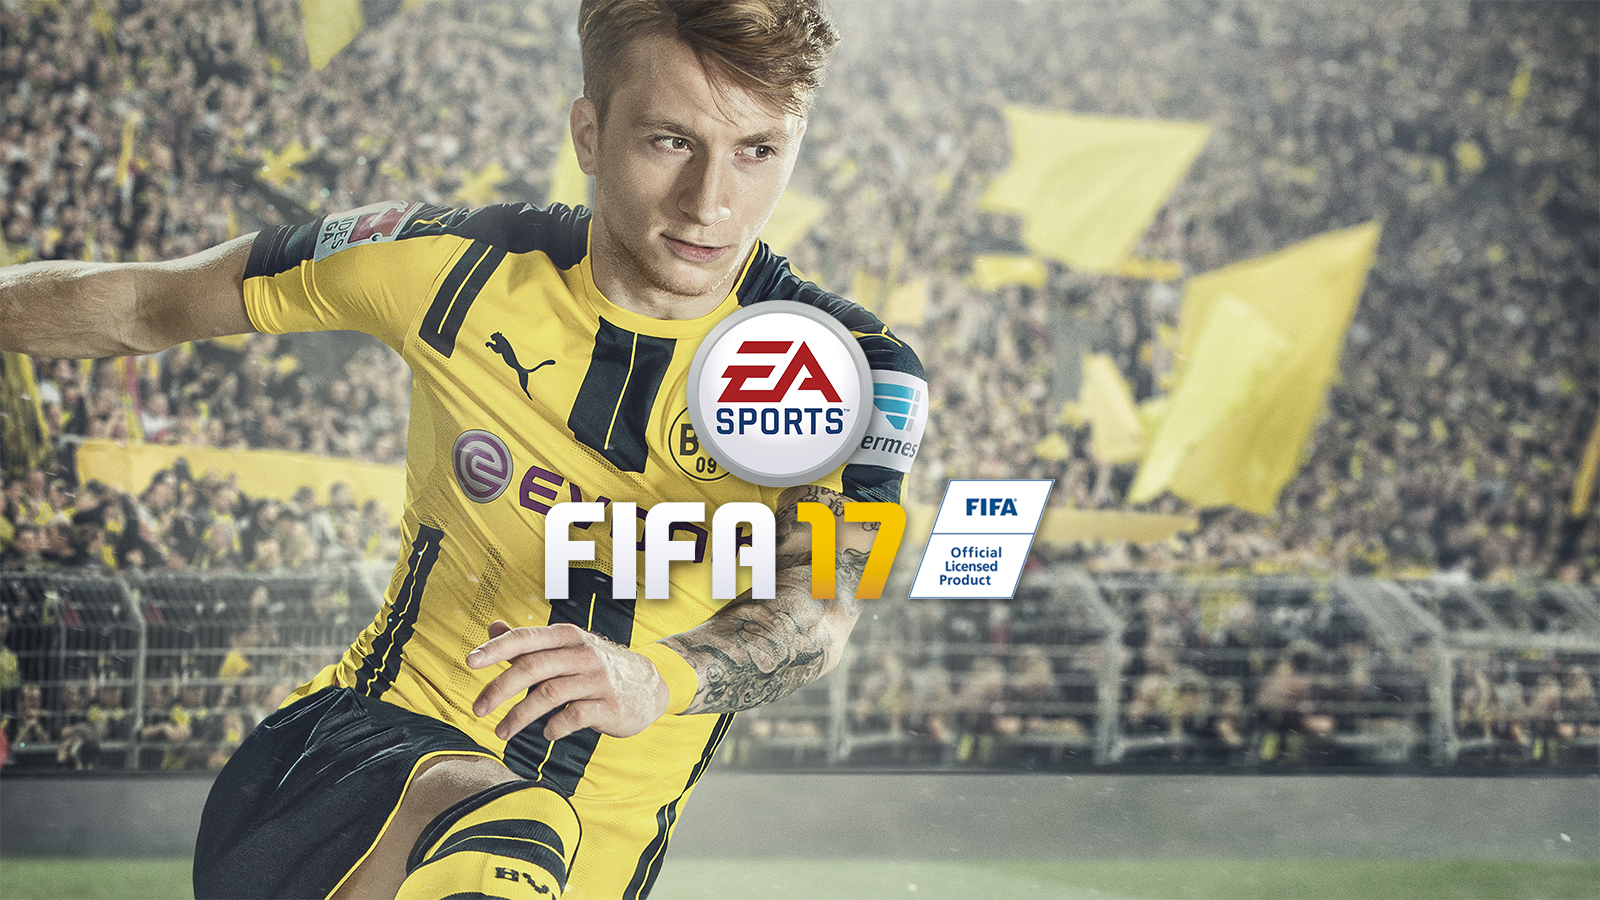 fifa 17 crack only torrent